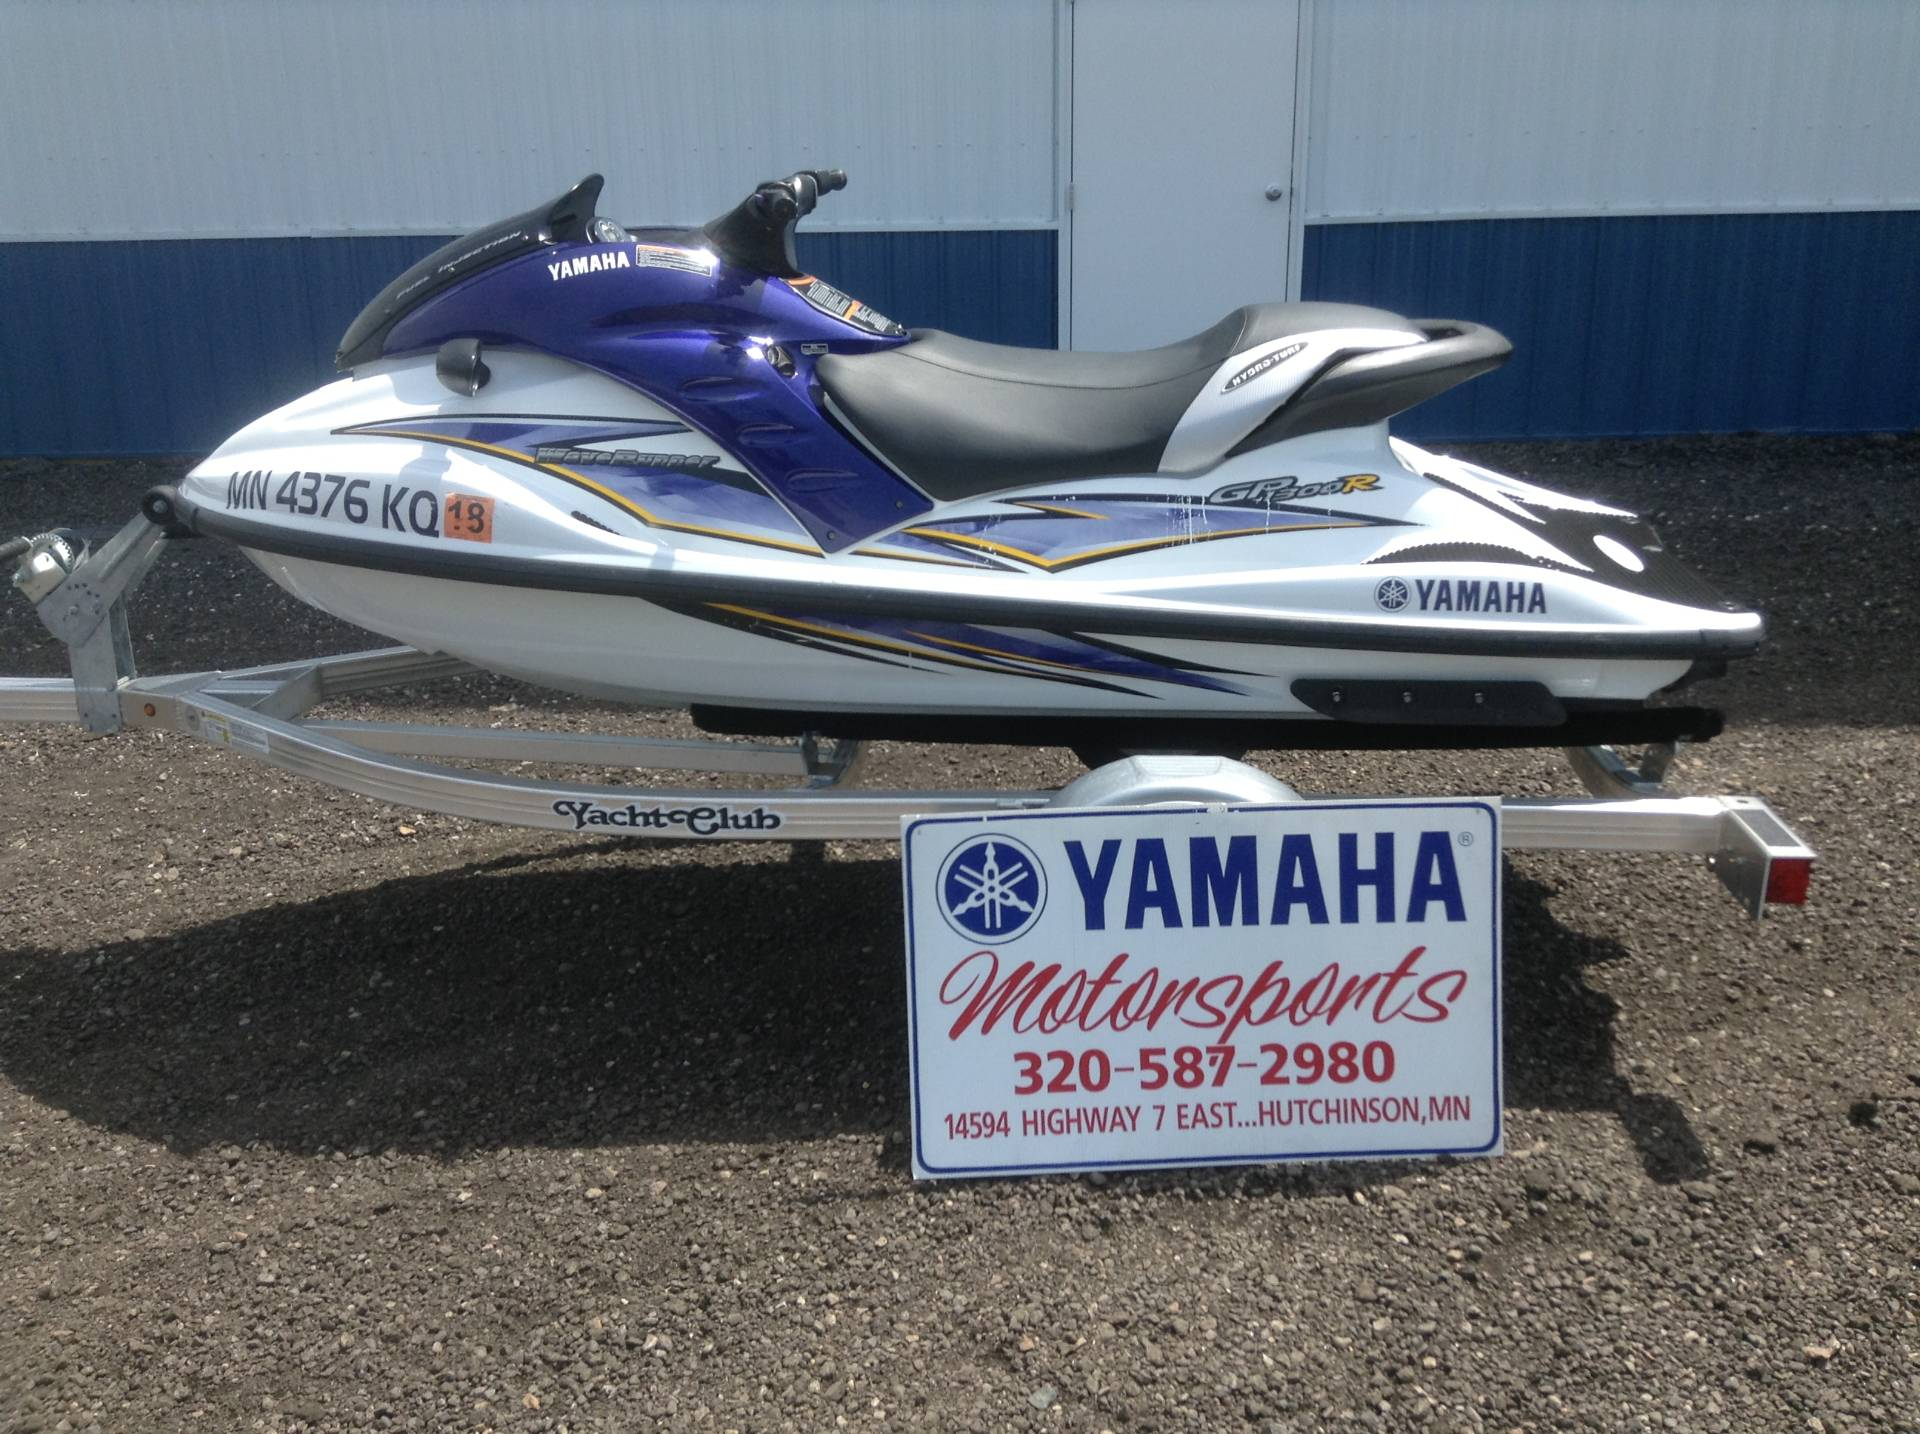 2004 Yamaha gp 1300 r in Hutchinson, Minnesota